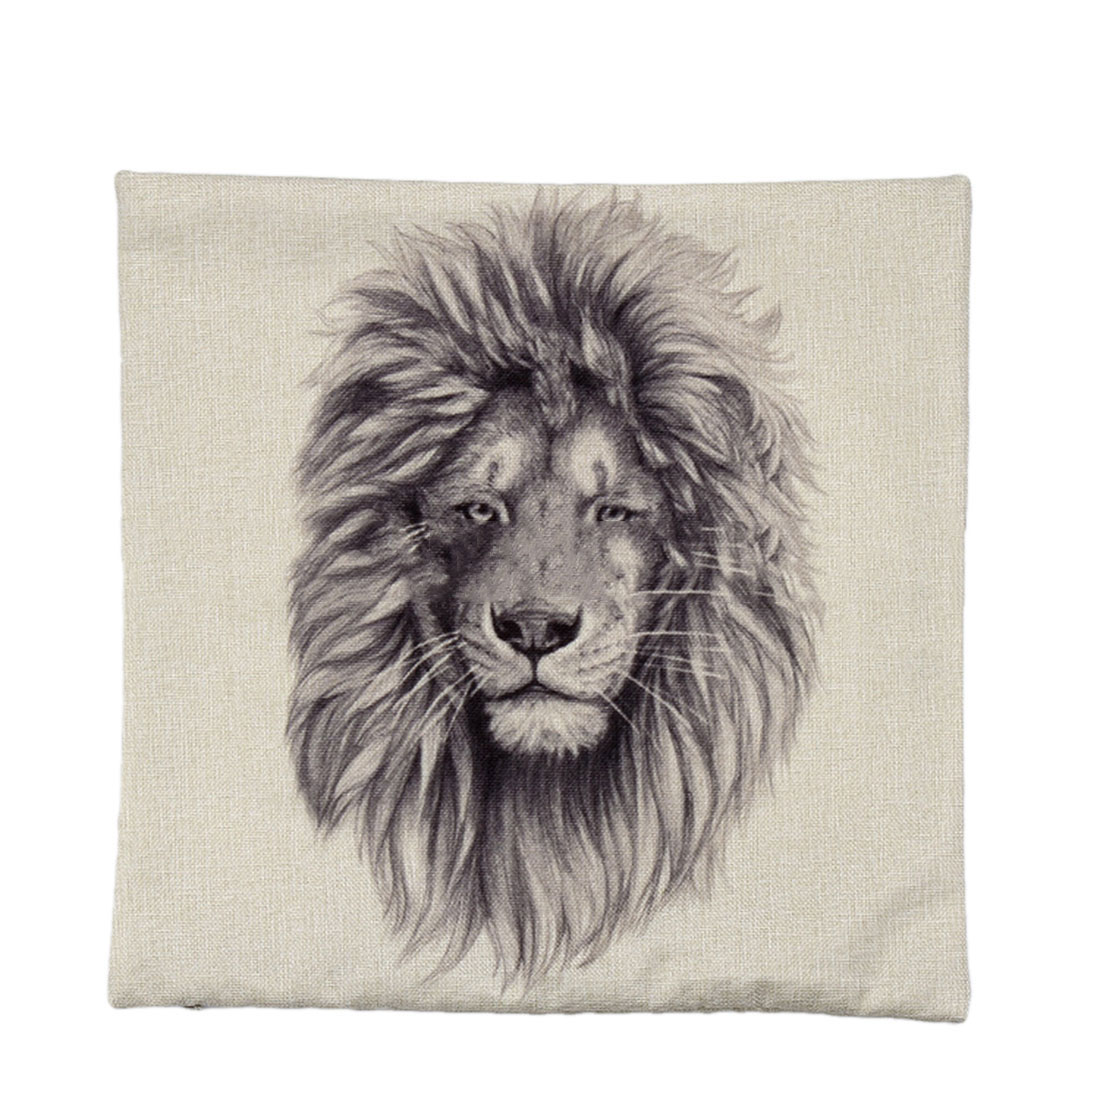 Piccocasa Sofa Bed Decor Lion Pattern Waist Cushion Pillow Cover Case